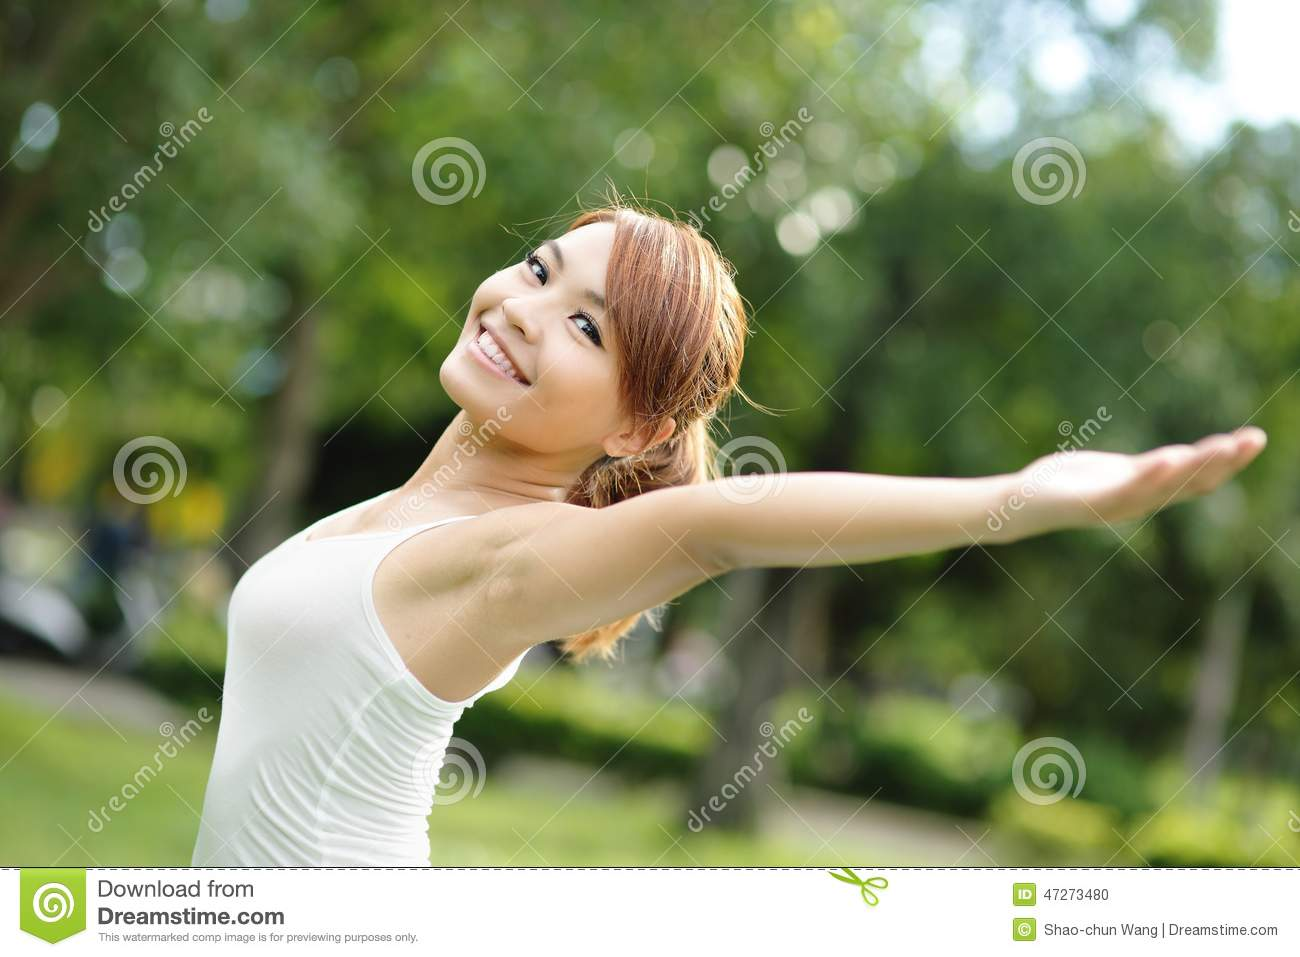 3e150792c9b Carefree and free cheering woman in the park. girl raising her arms up  smiling happy. asian beauty